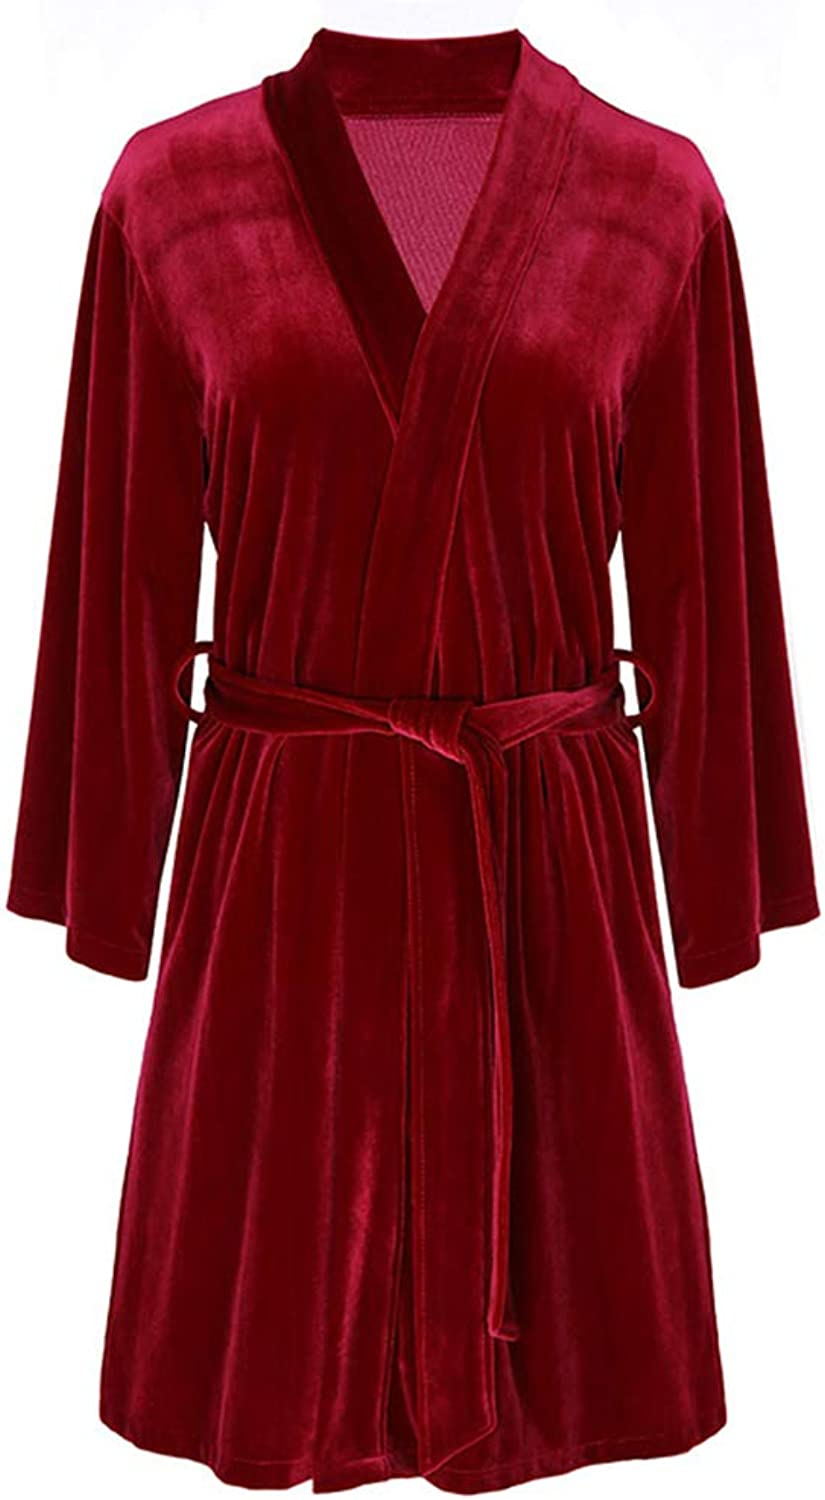 Bathrobe Shawl Towel Velvet Gown Luxury Nightgown Sexy Pajamas Bath Toga Strong Water Absorption   Red   Bride (Size   XL)